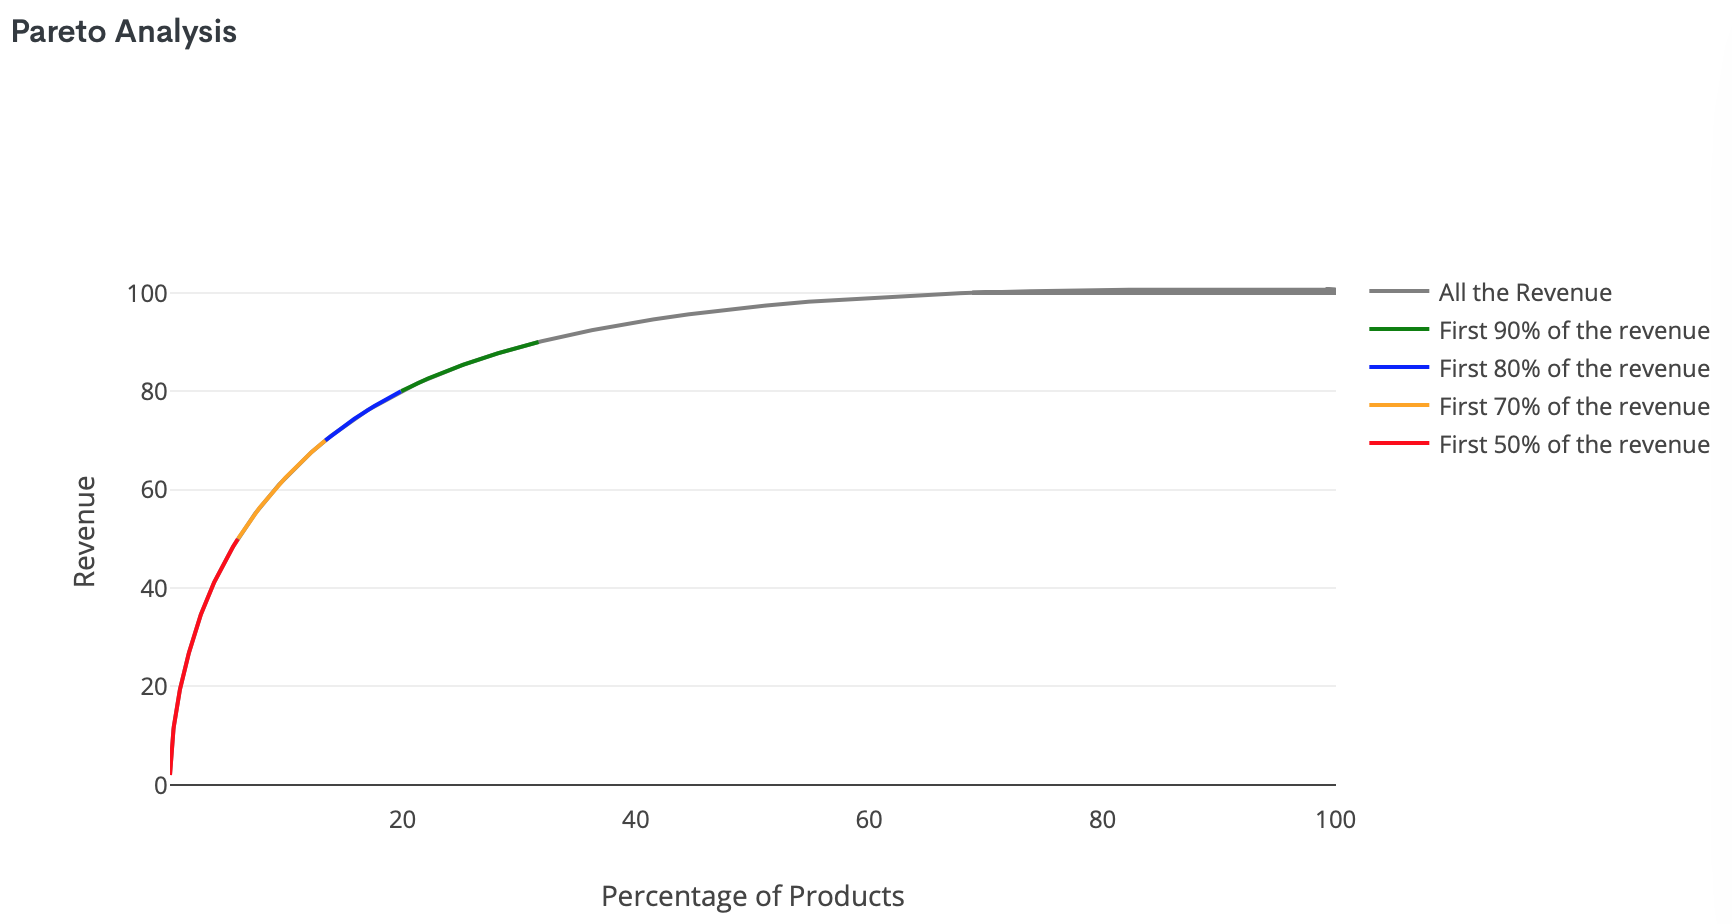 Pareto Analysis of the company's products offering: only 19.82 % of the products are responsible for a whooping 80% of the business revenue